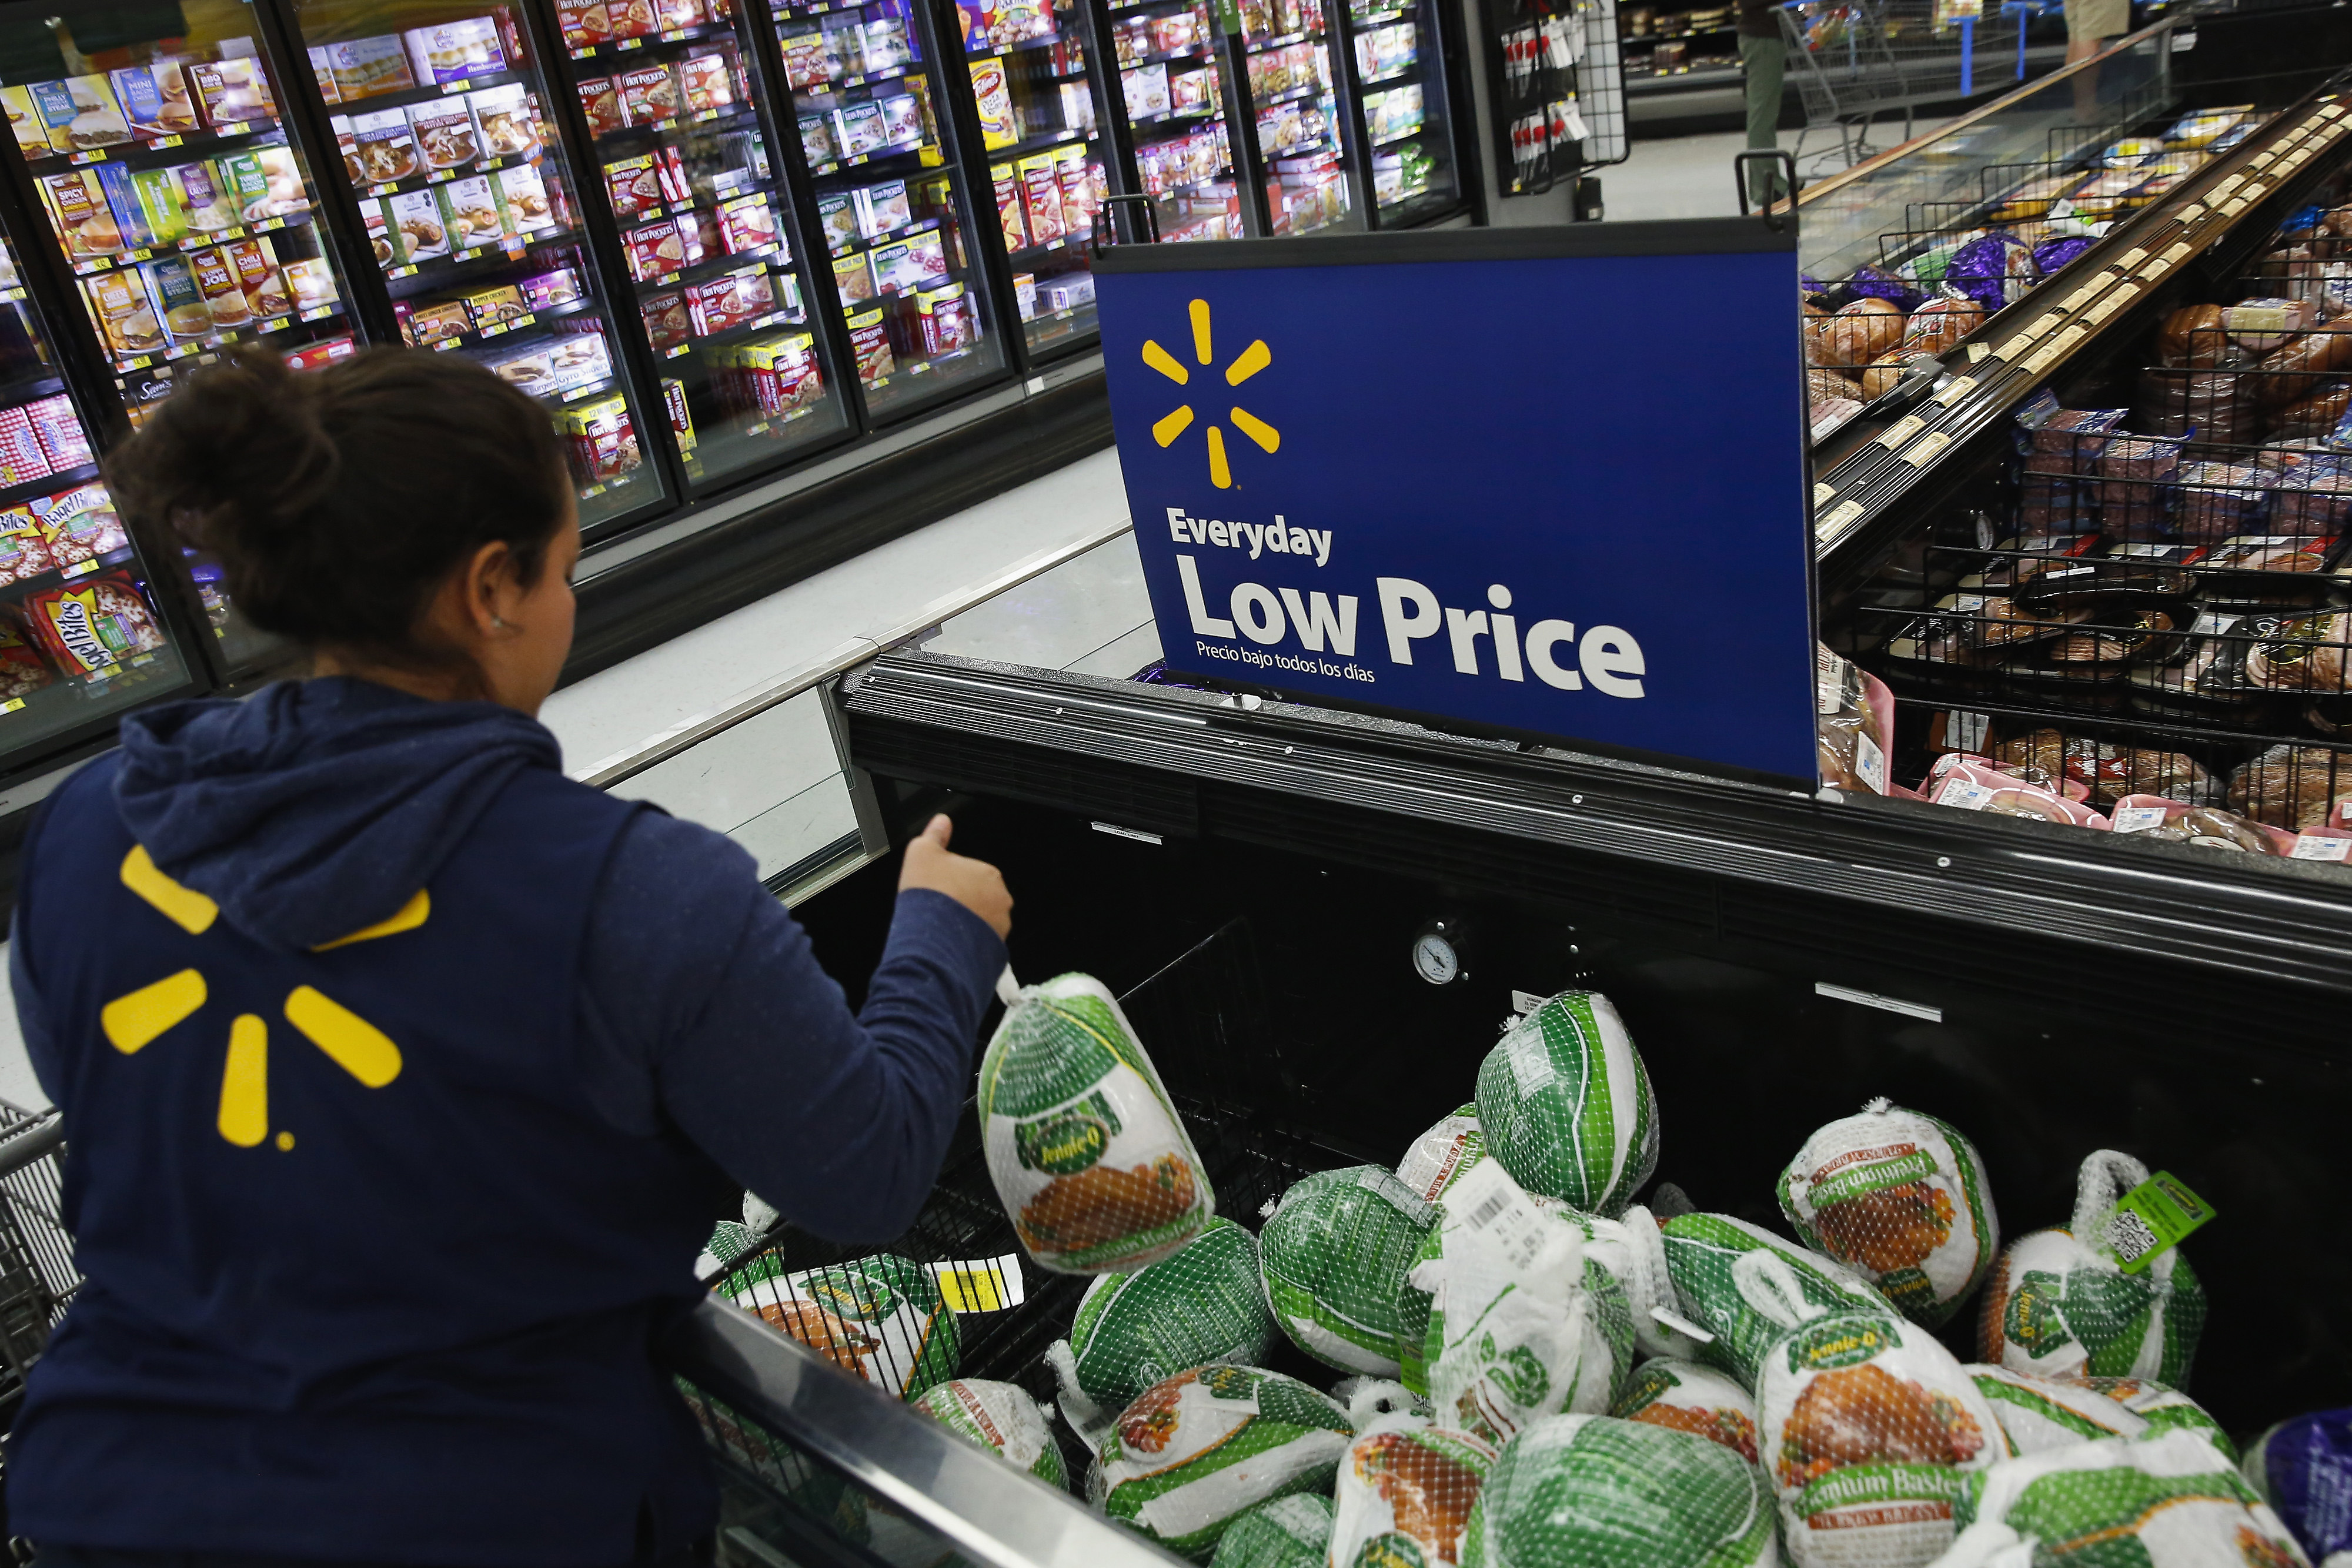 Operations Inside A Wal-Mart Stores Inc. Location Ahead Of Black Friday